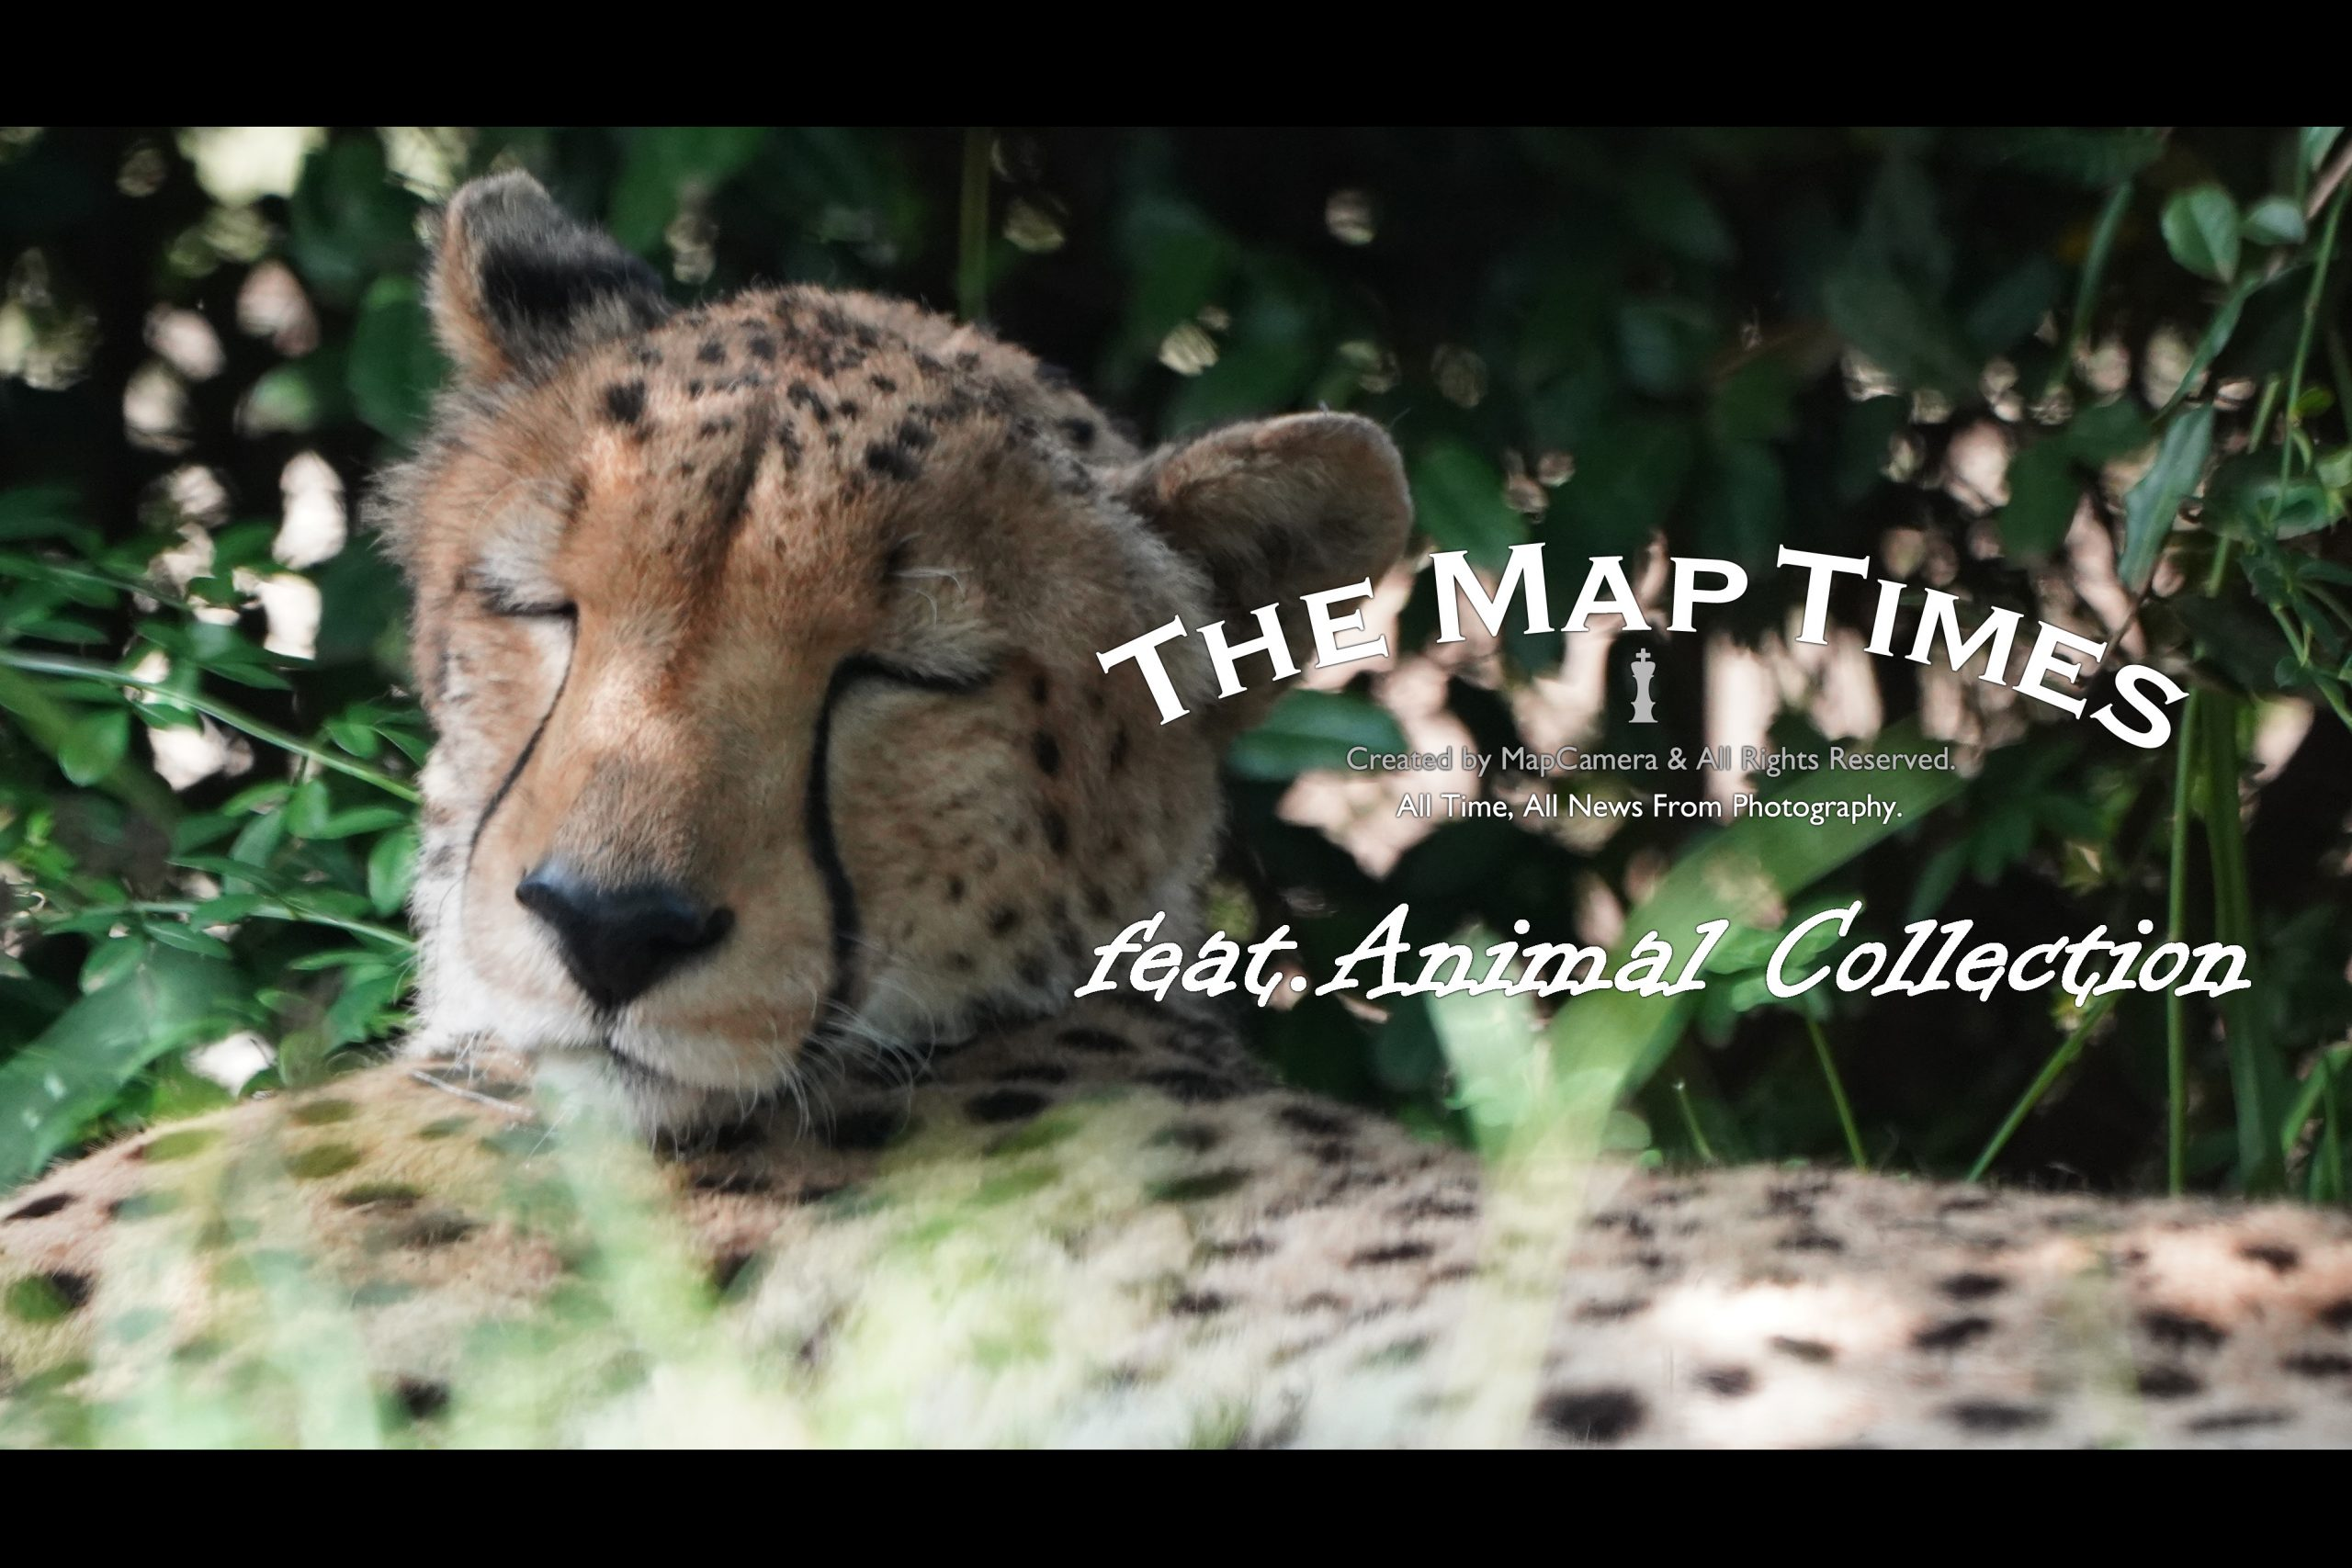 【SONY】アニコレ~Animal collection~Part4.5